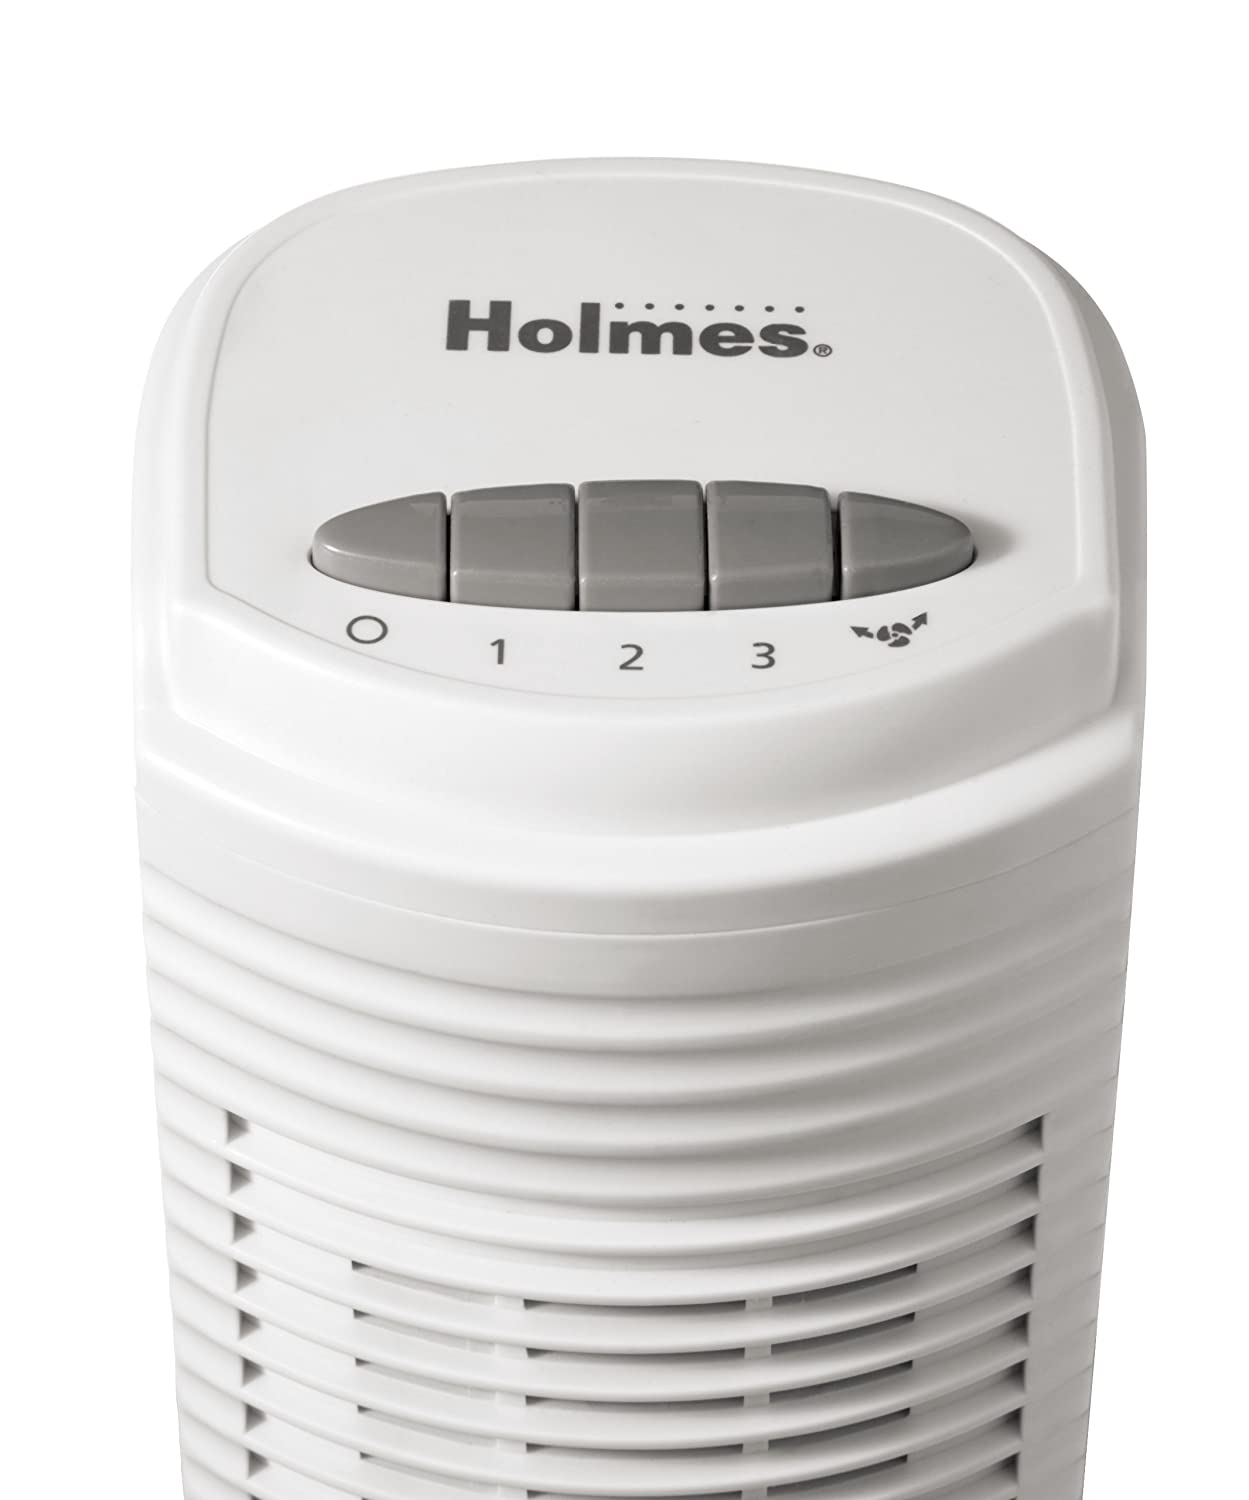 Holmes HTF3110A-WM Oscillating Tower Fan